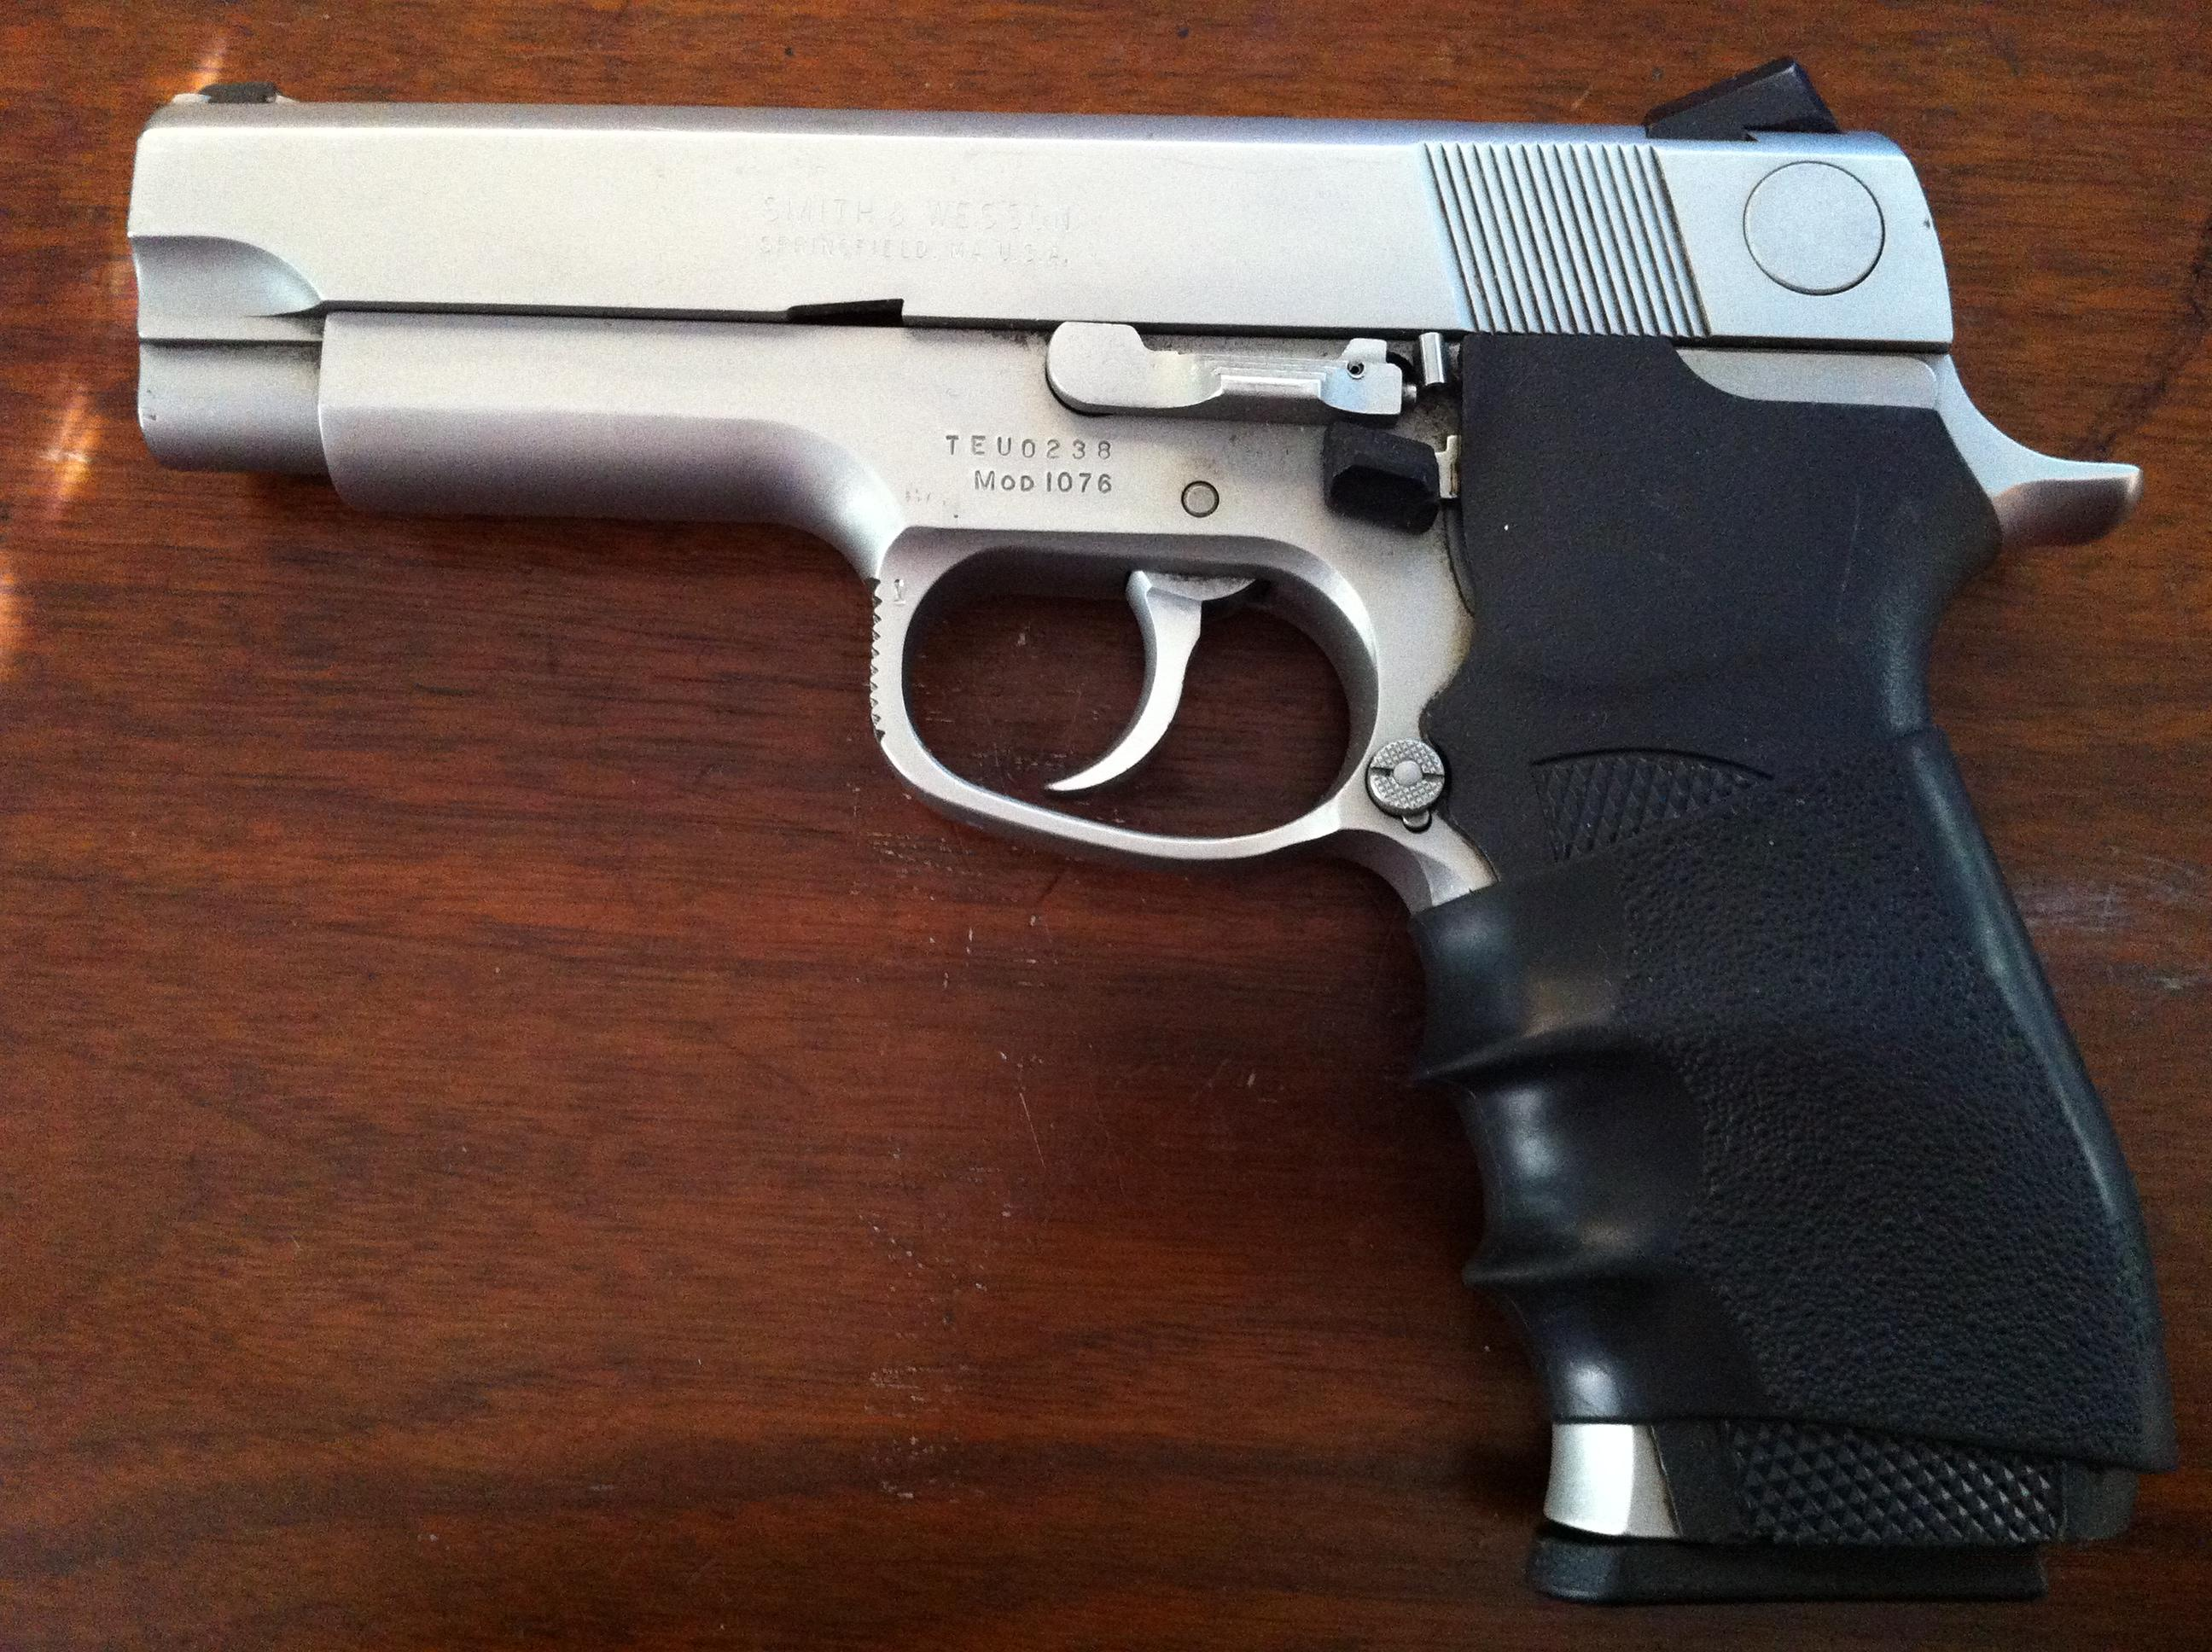 Smith & Wesson 10mm pistol Mod 1076